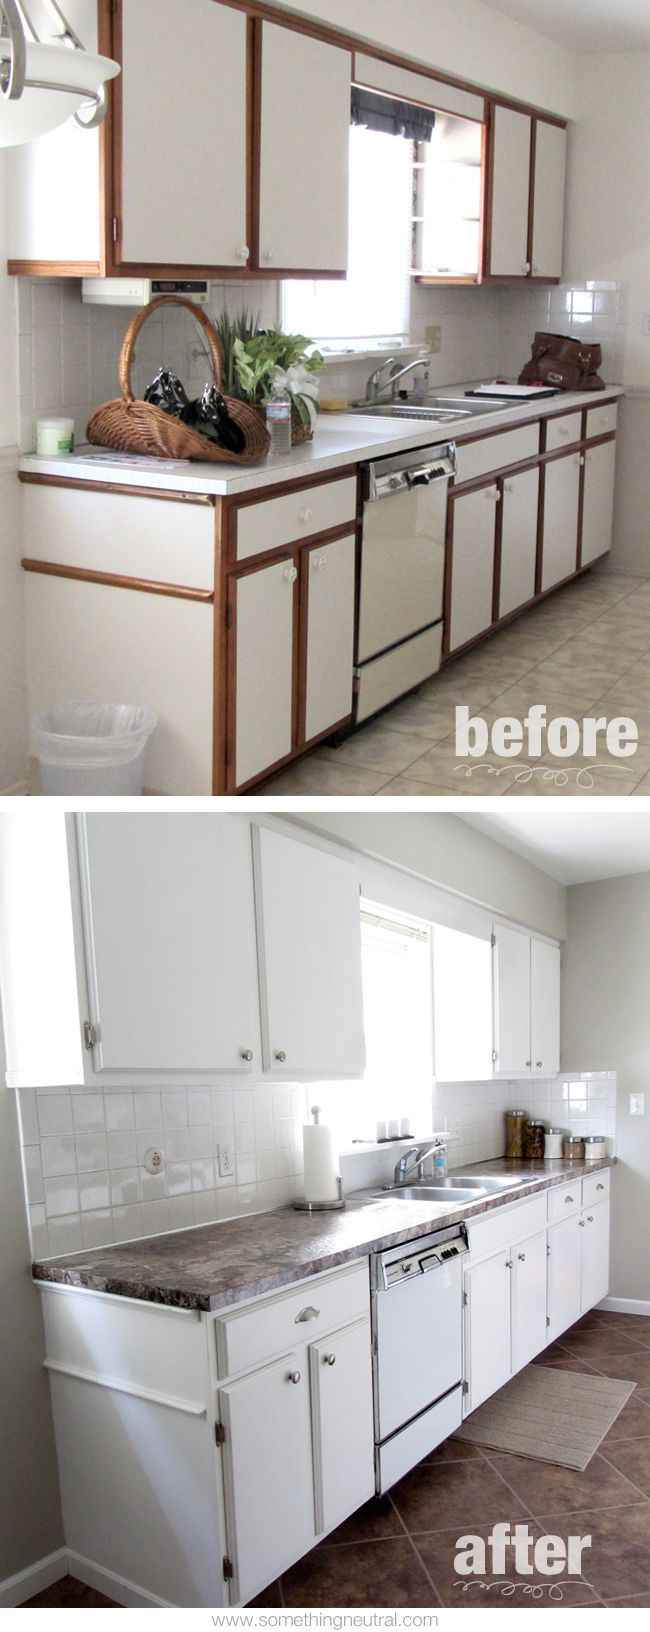 Kitchen before after diy neutral tan white for Painting kitchen countertops before and after